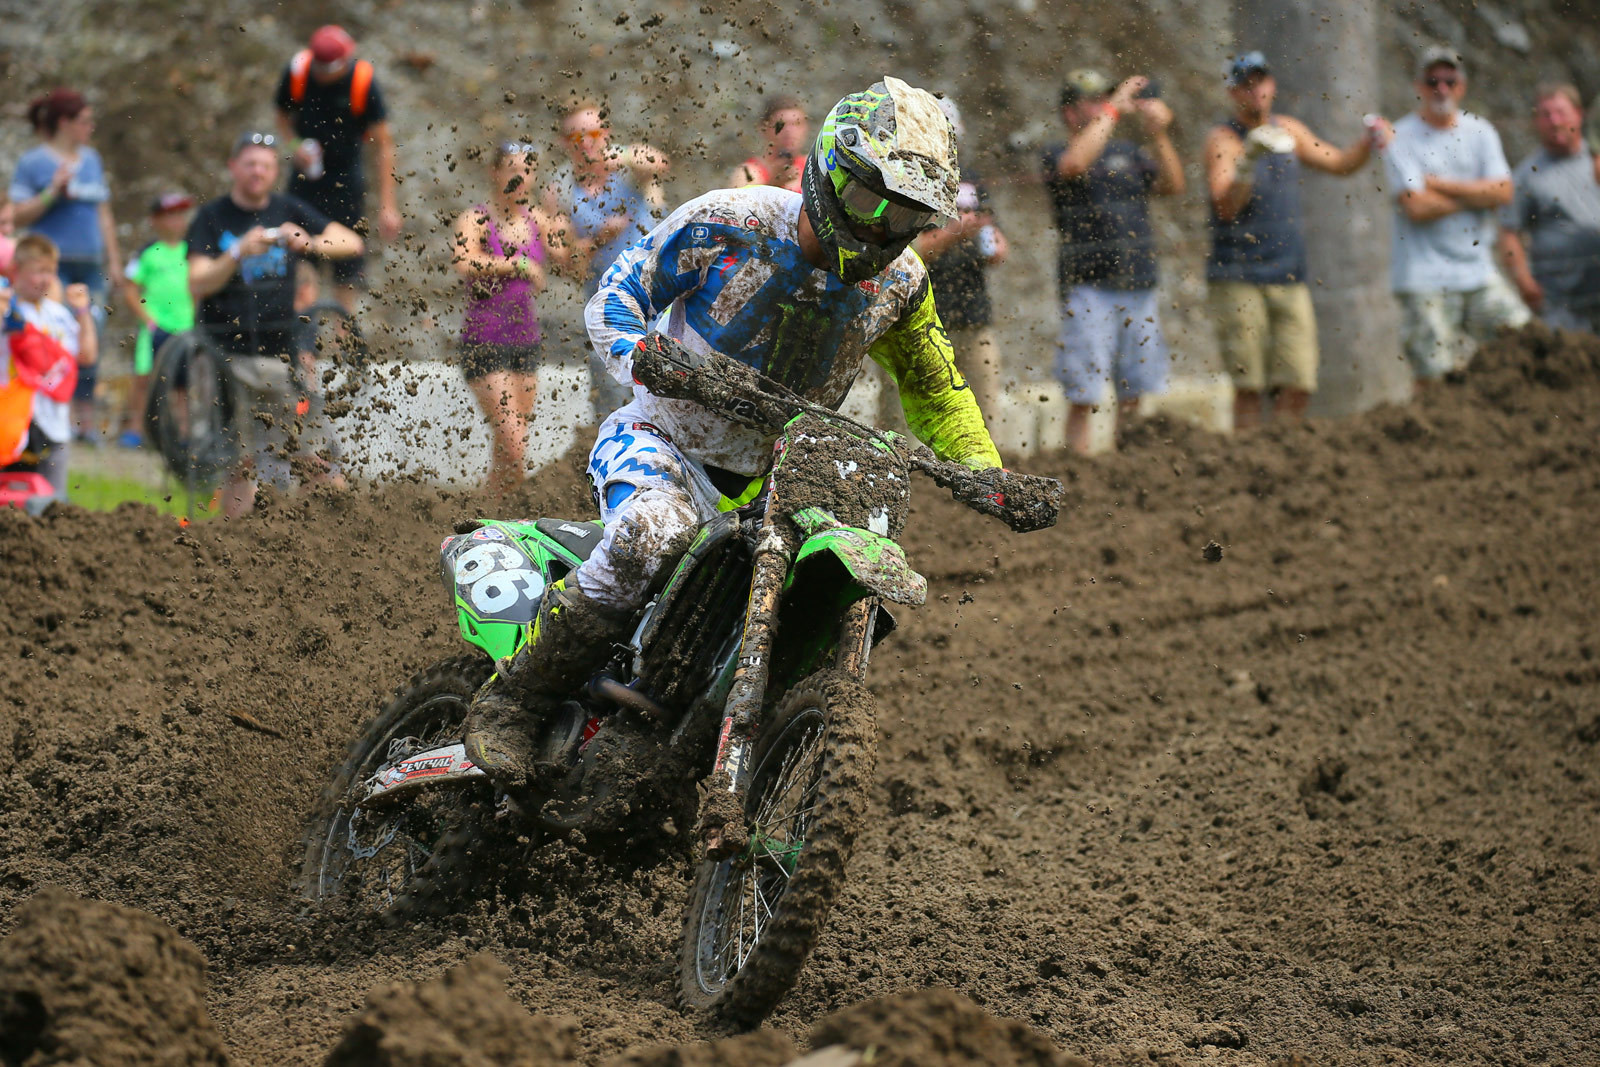 Arnaud Tonus - Photo Blast: Ironman - Motocross Pictures - Vital MX